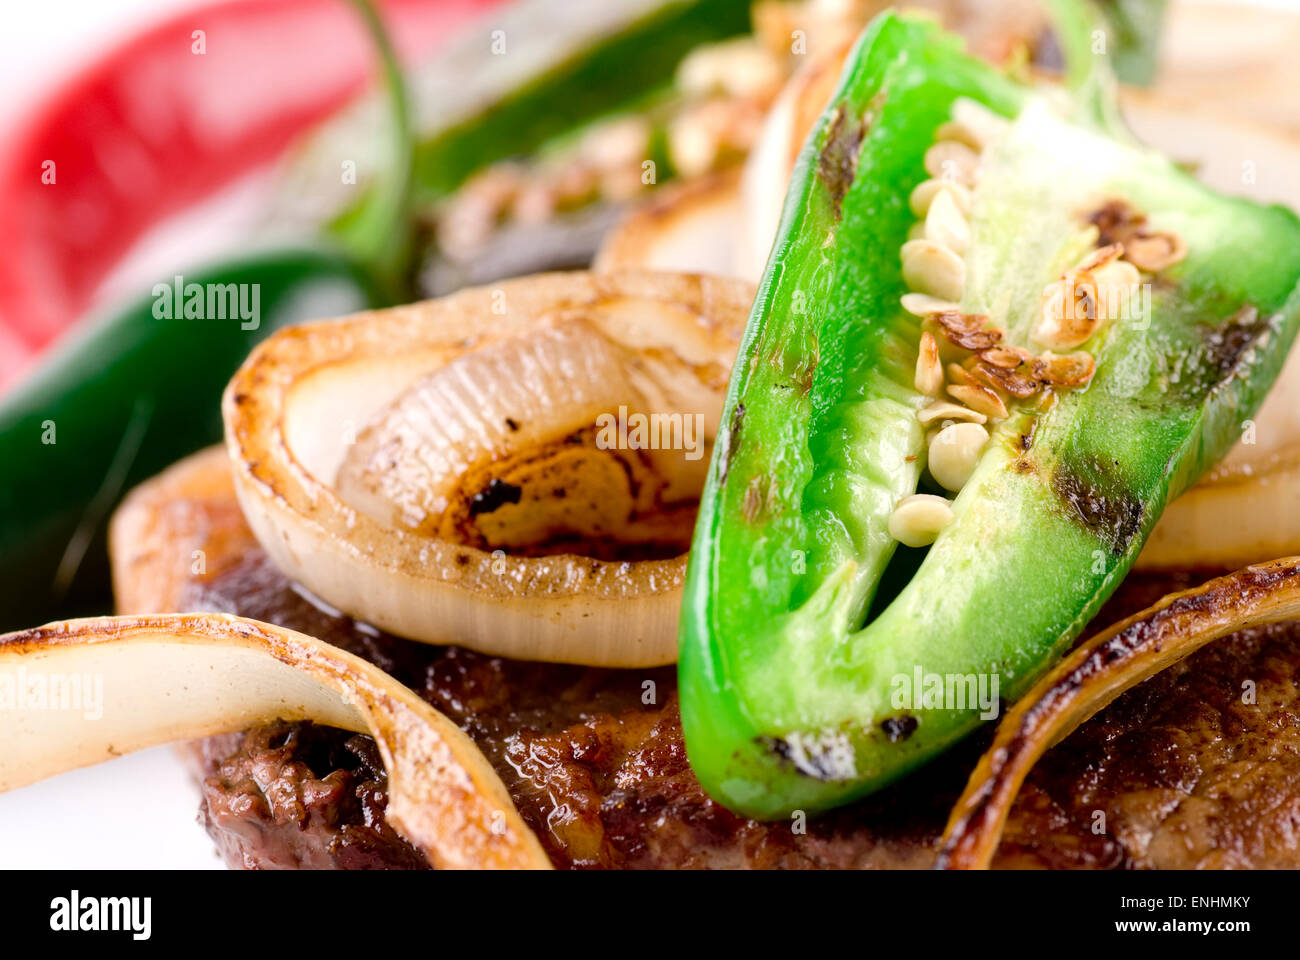 Beef steak with jalapeno and sliced onion close up. - Stock Image